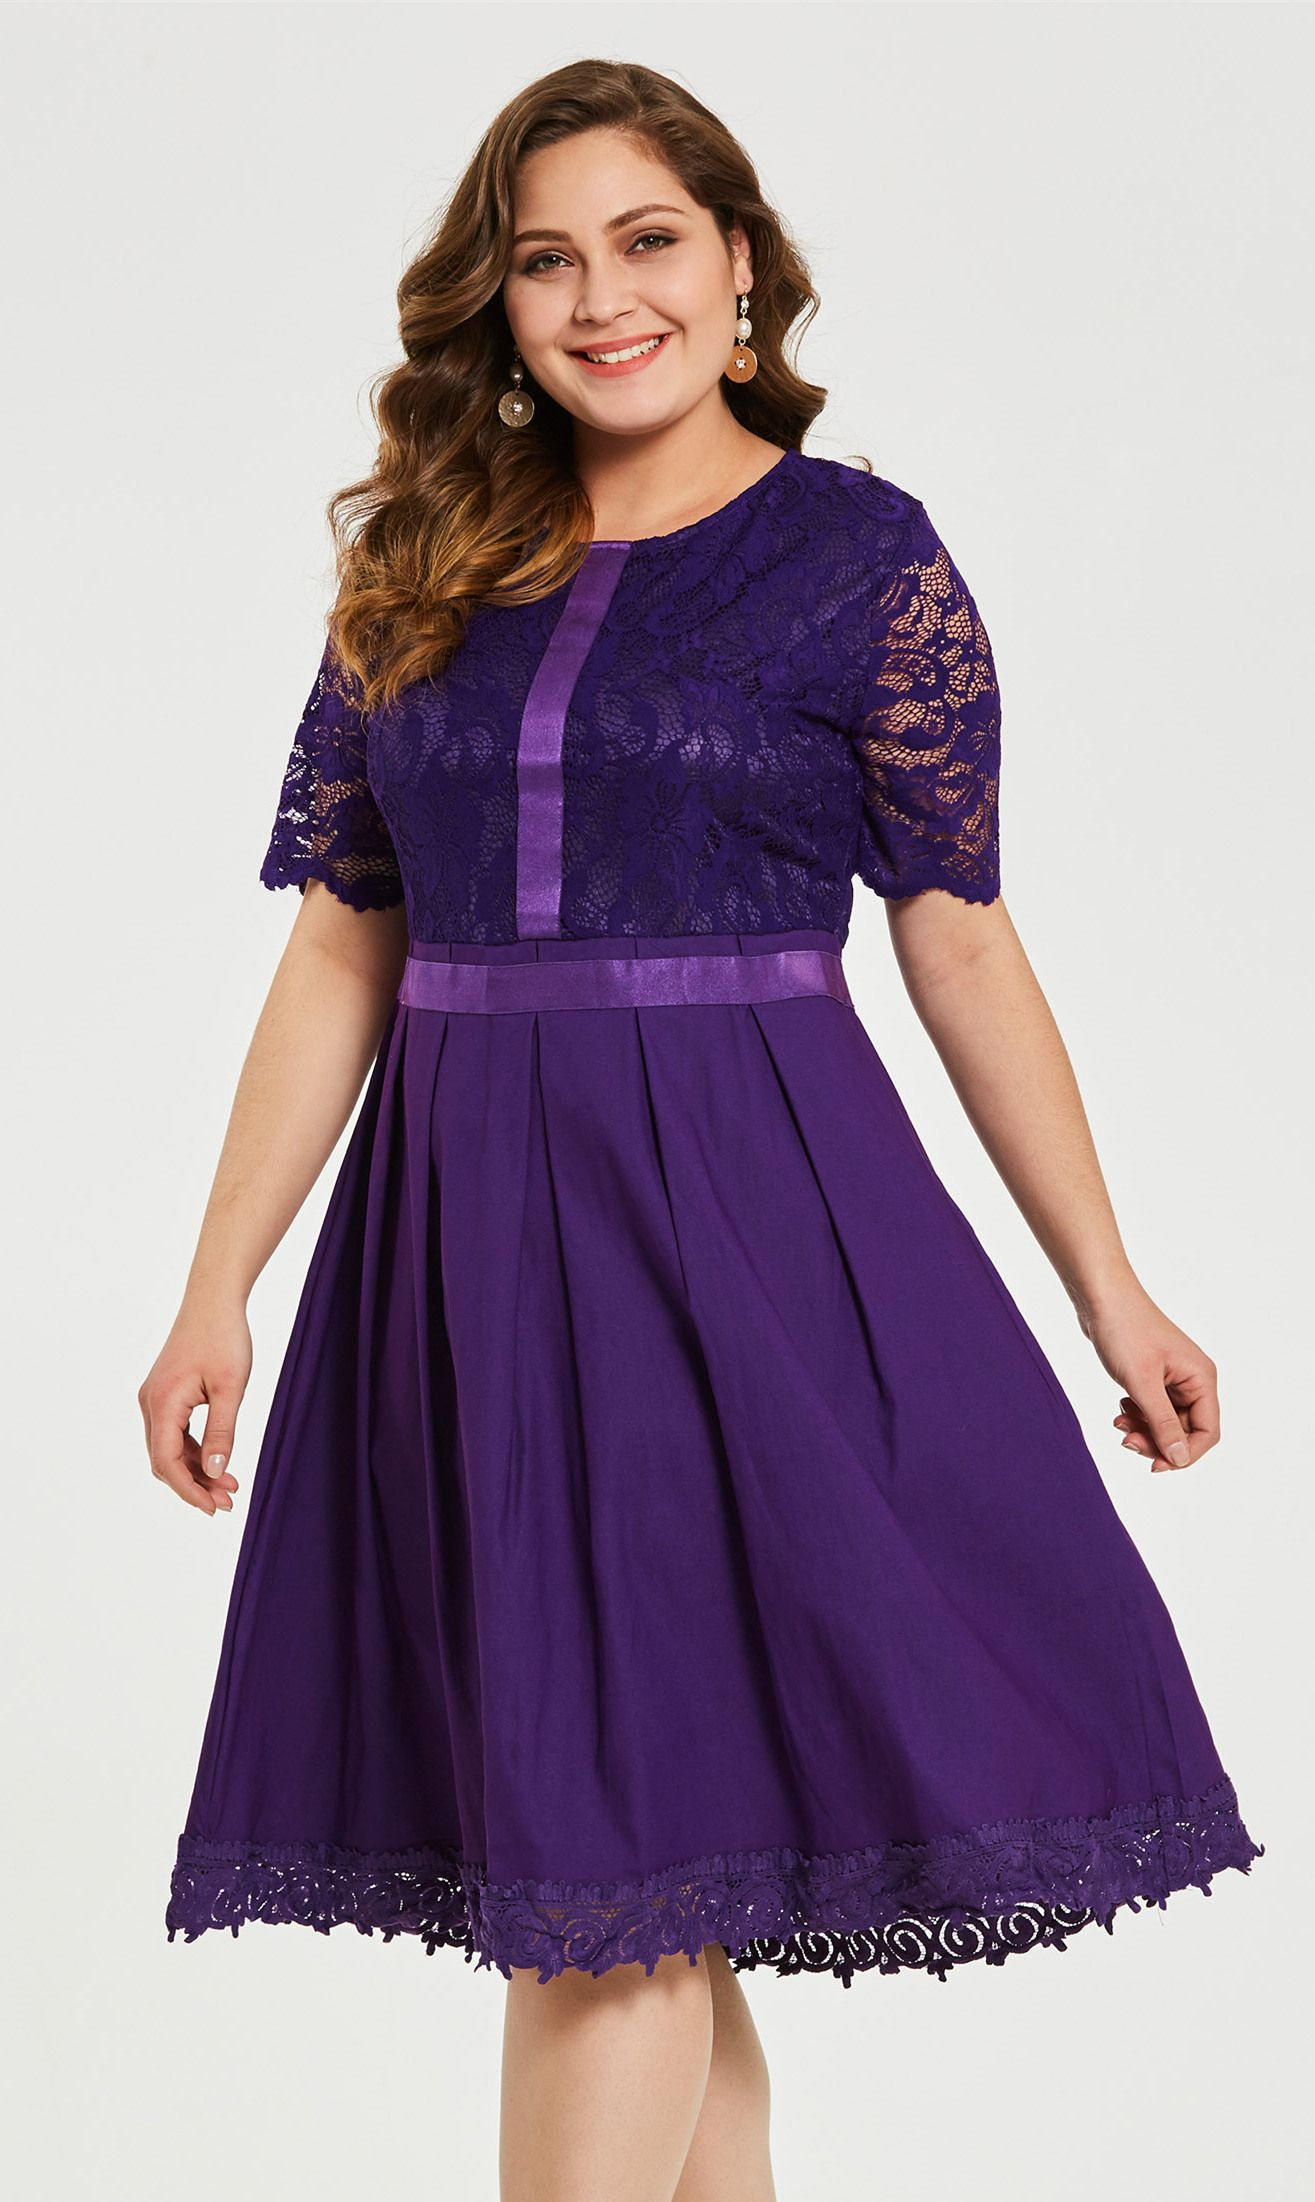 Dark Purple Plus Size Short Sleeve Women S Day Dress With Images Ladies Day Dresses Dresses Plus Size Fashionista